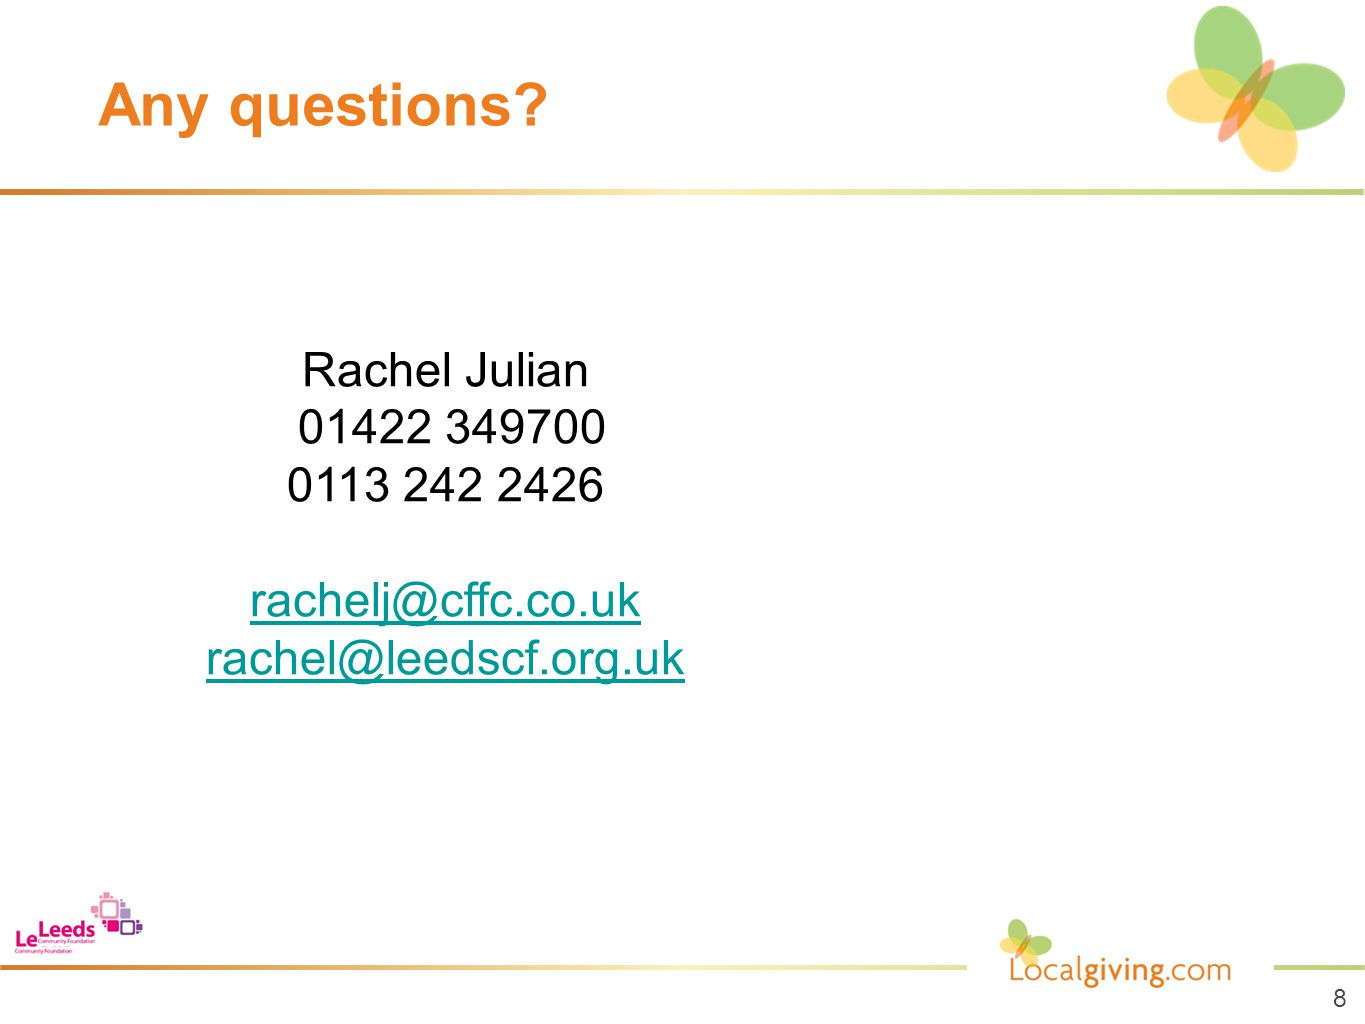 8 Any questions? Rachel Julian 01422 349700 0113 242 2426 rachelj@cffc.co.uk rachel@leedscf.org.uk